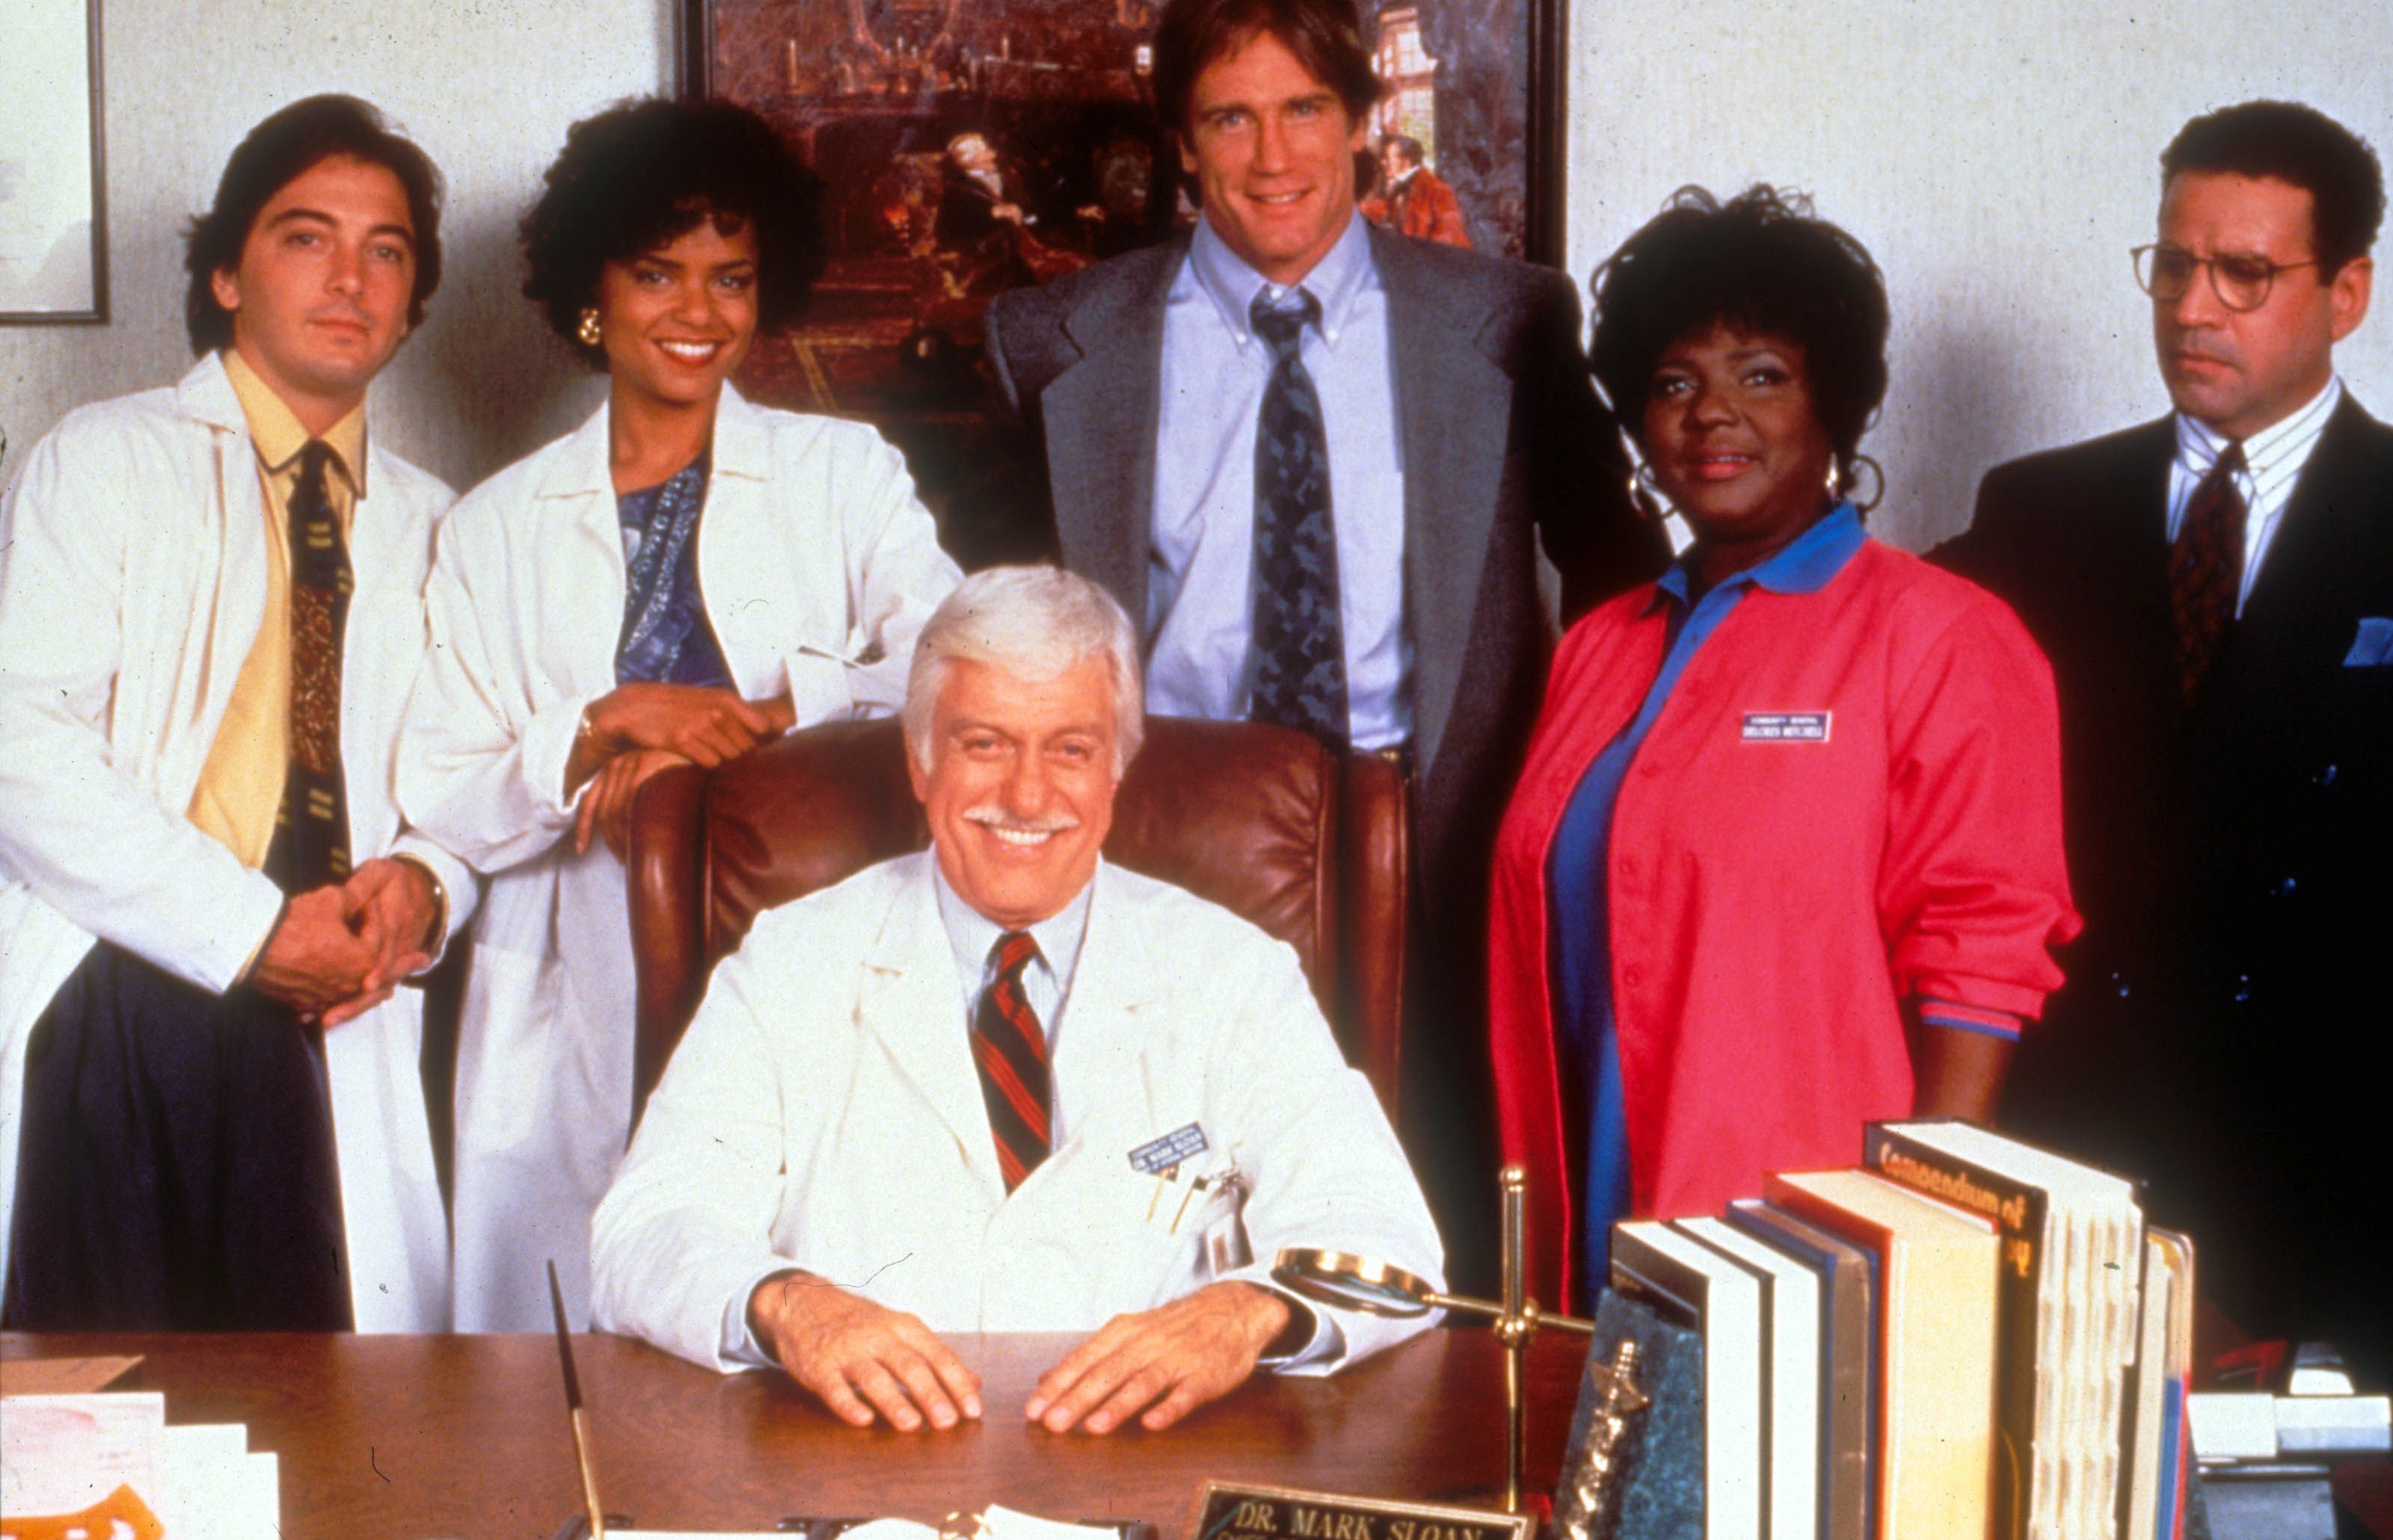 Diagnosis Murder: Dick Van Dyke, his son Barry and the rest